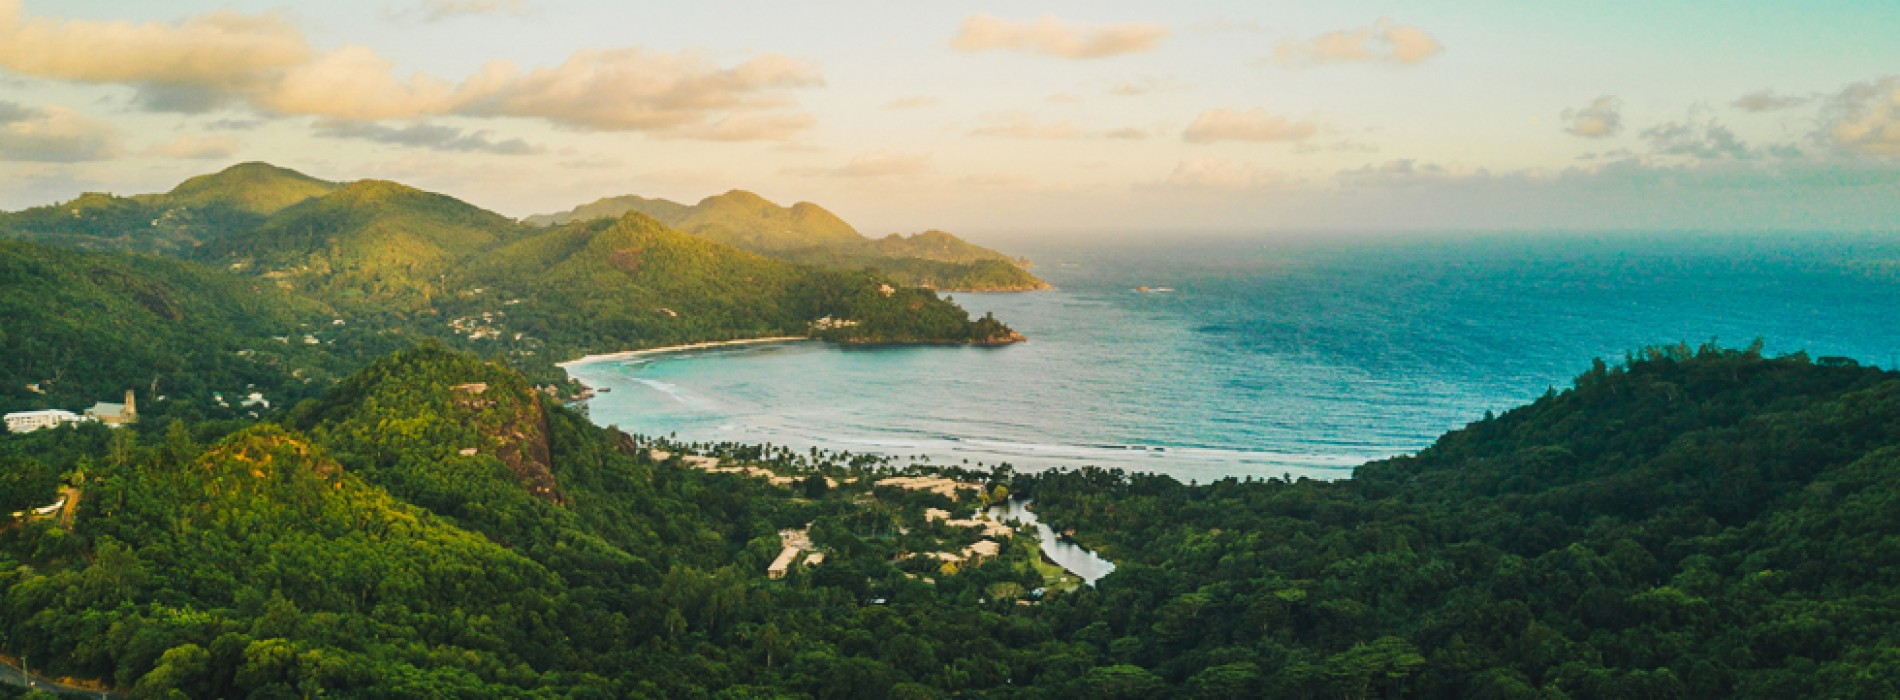 Kempinski Seychelles Resort recognized by Luxury Travel Guide for eco-friendly efforts